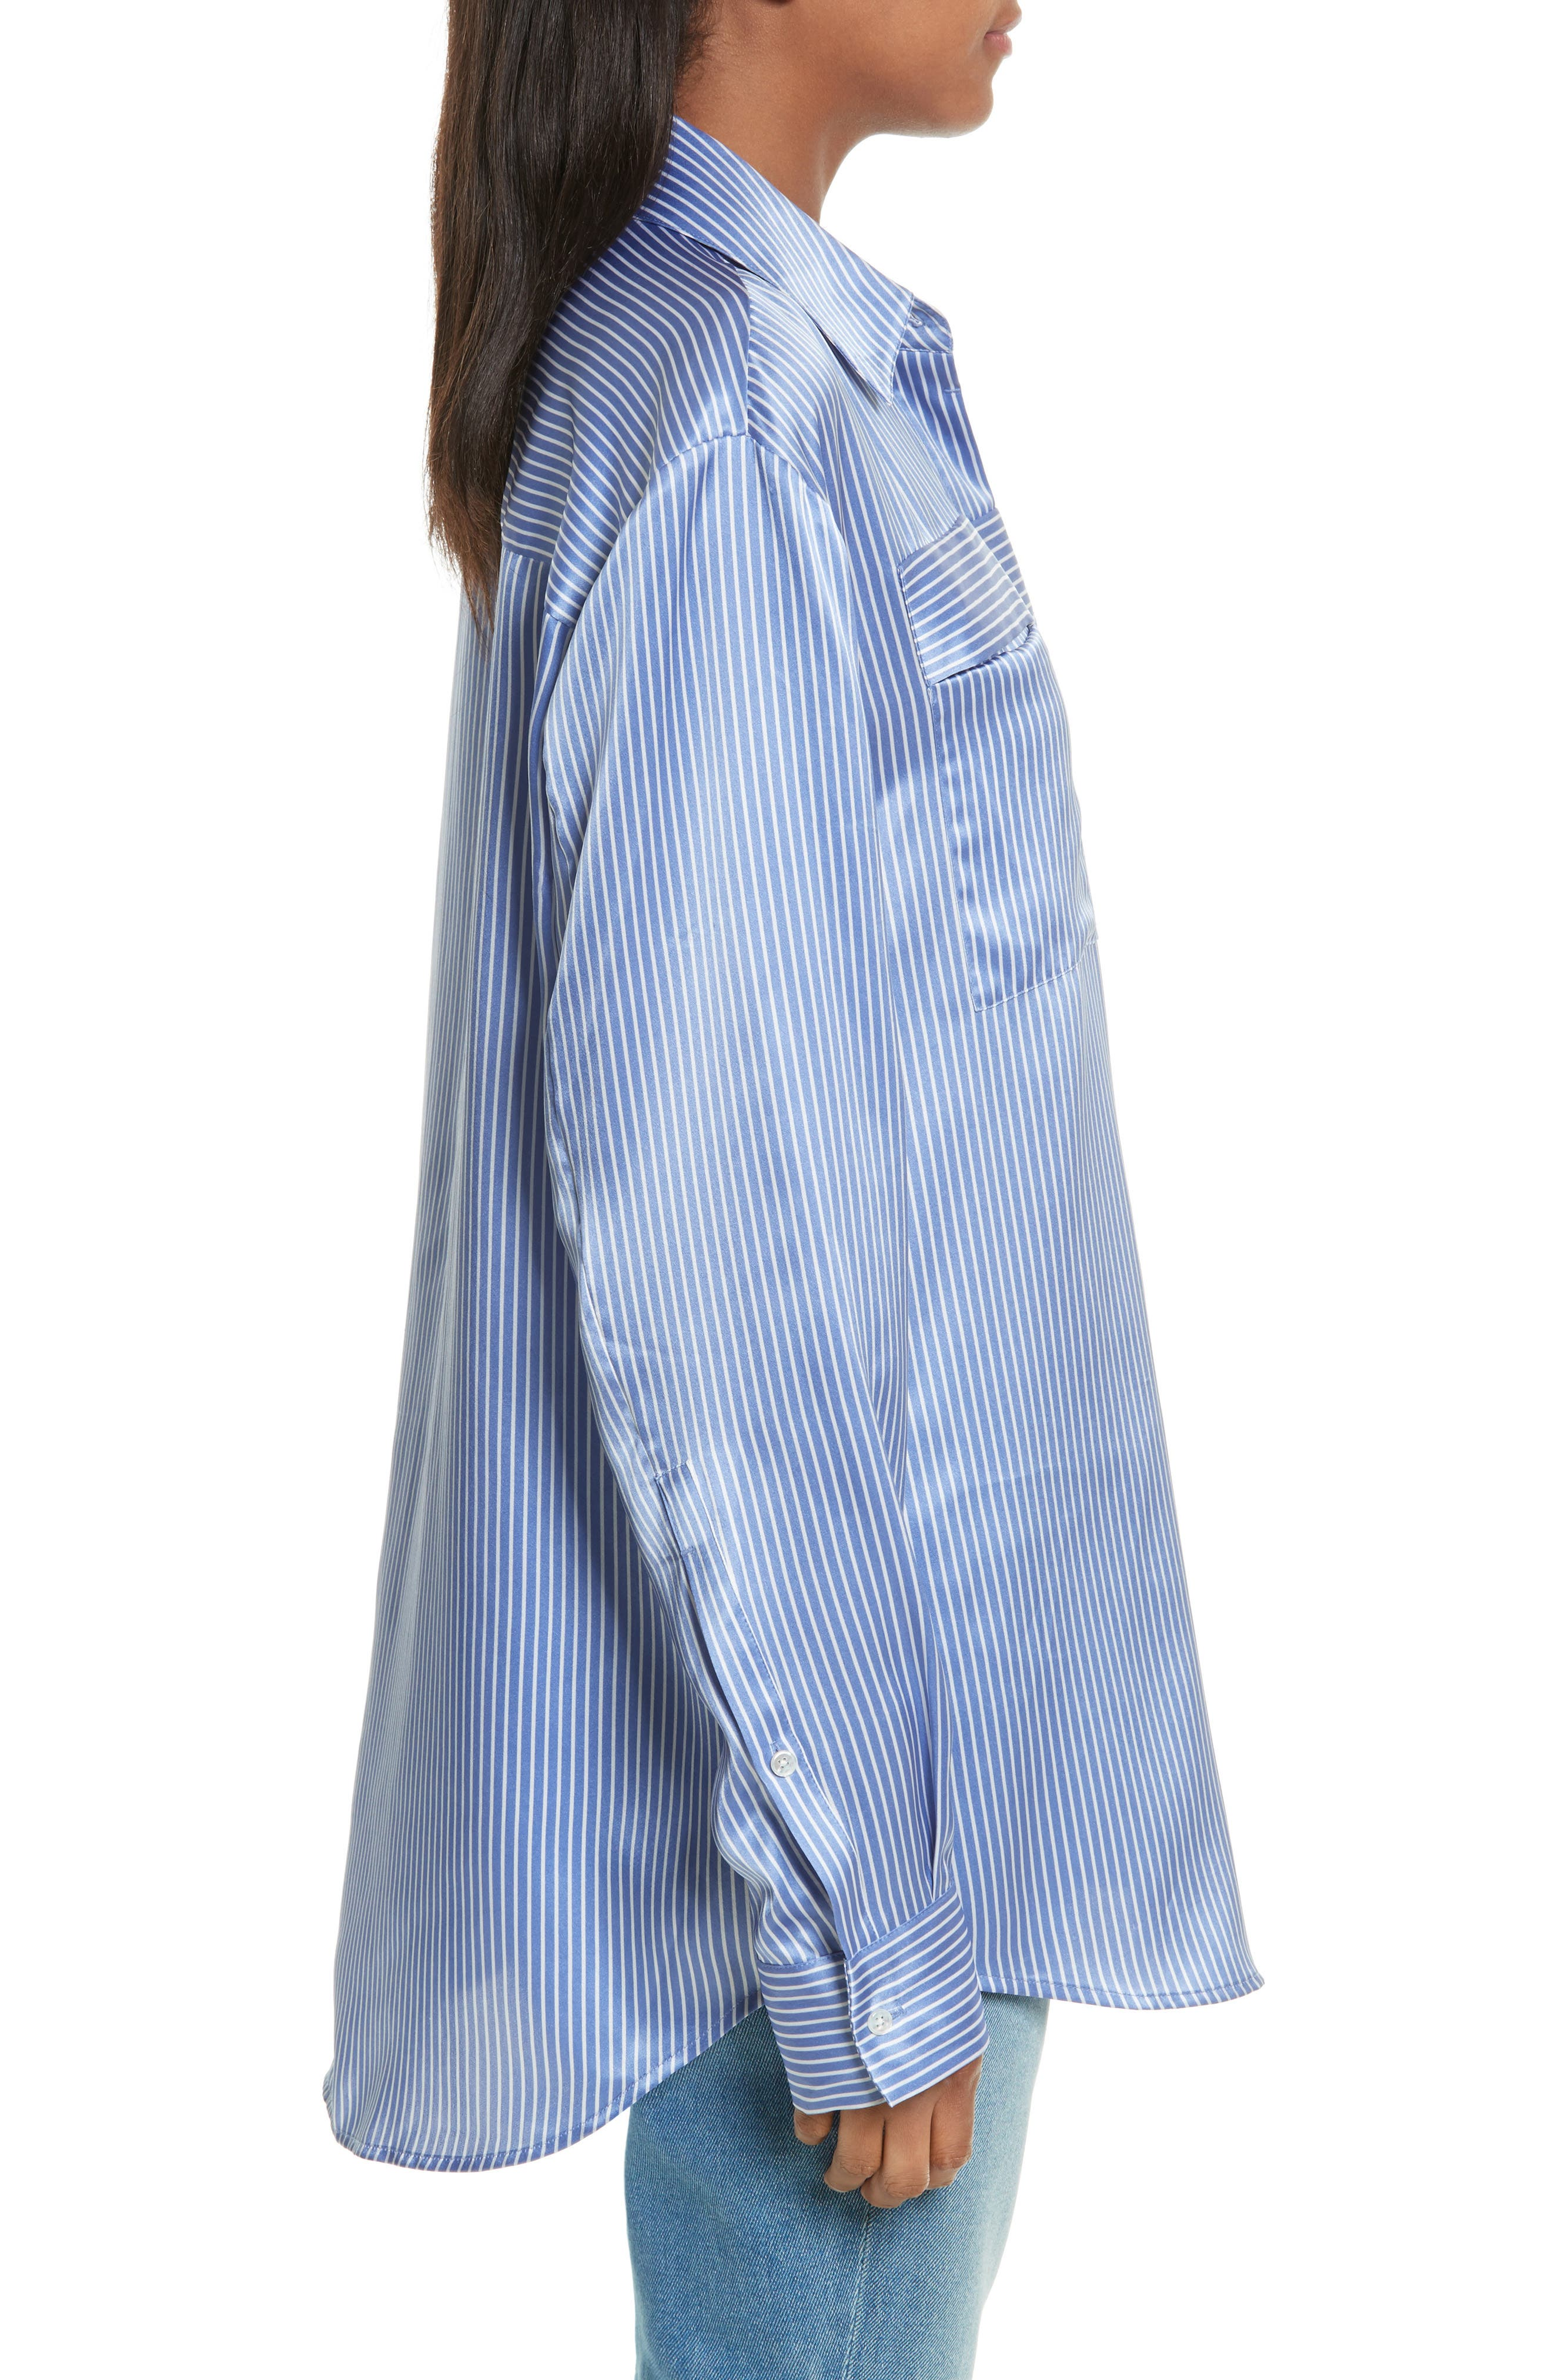 Silk Satin Blouse,                             Alternate thumbnail 3, color,                             Washed Whale With White Stripe